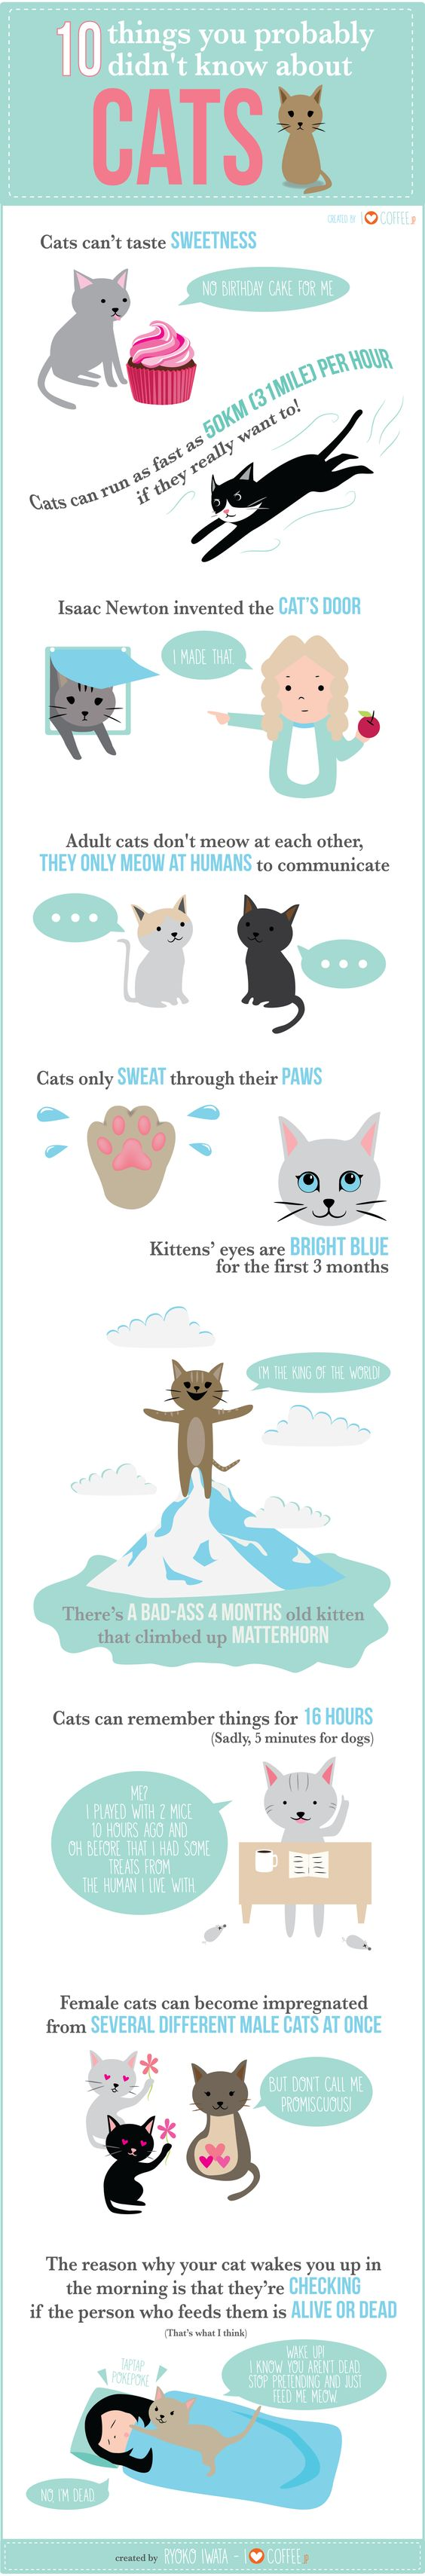 10 things your probably didn't know about cats: cat infographics